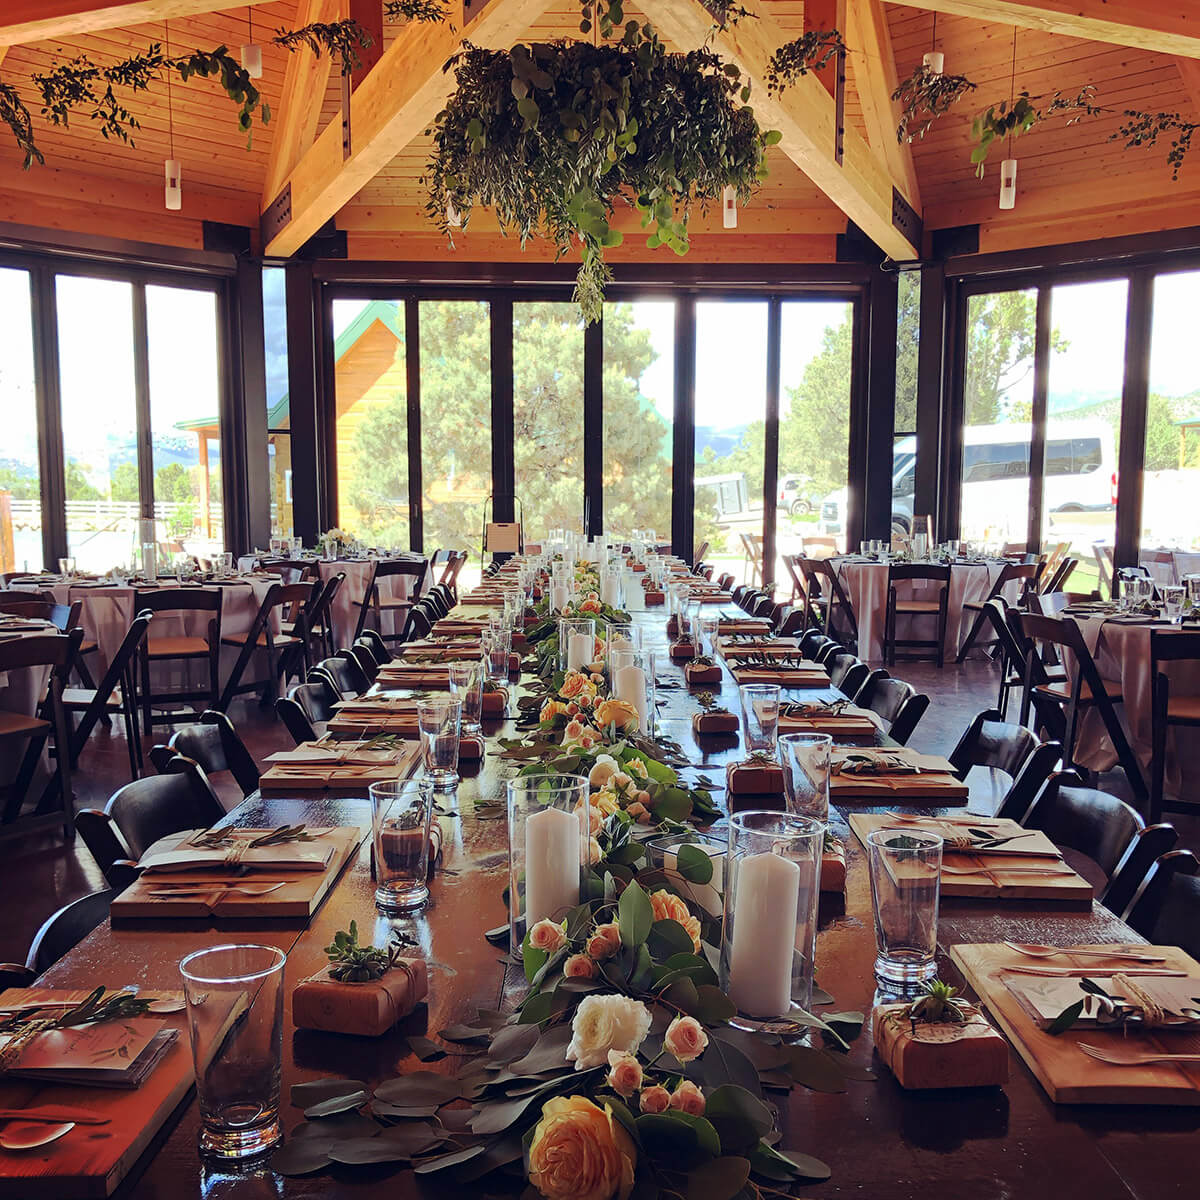 Banquet setting with long table